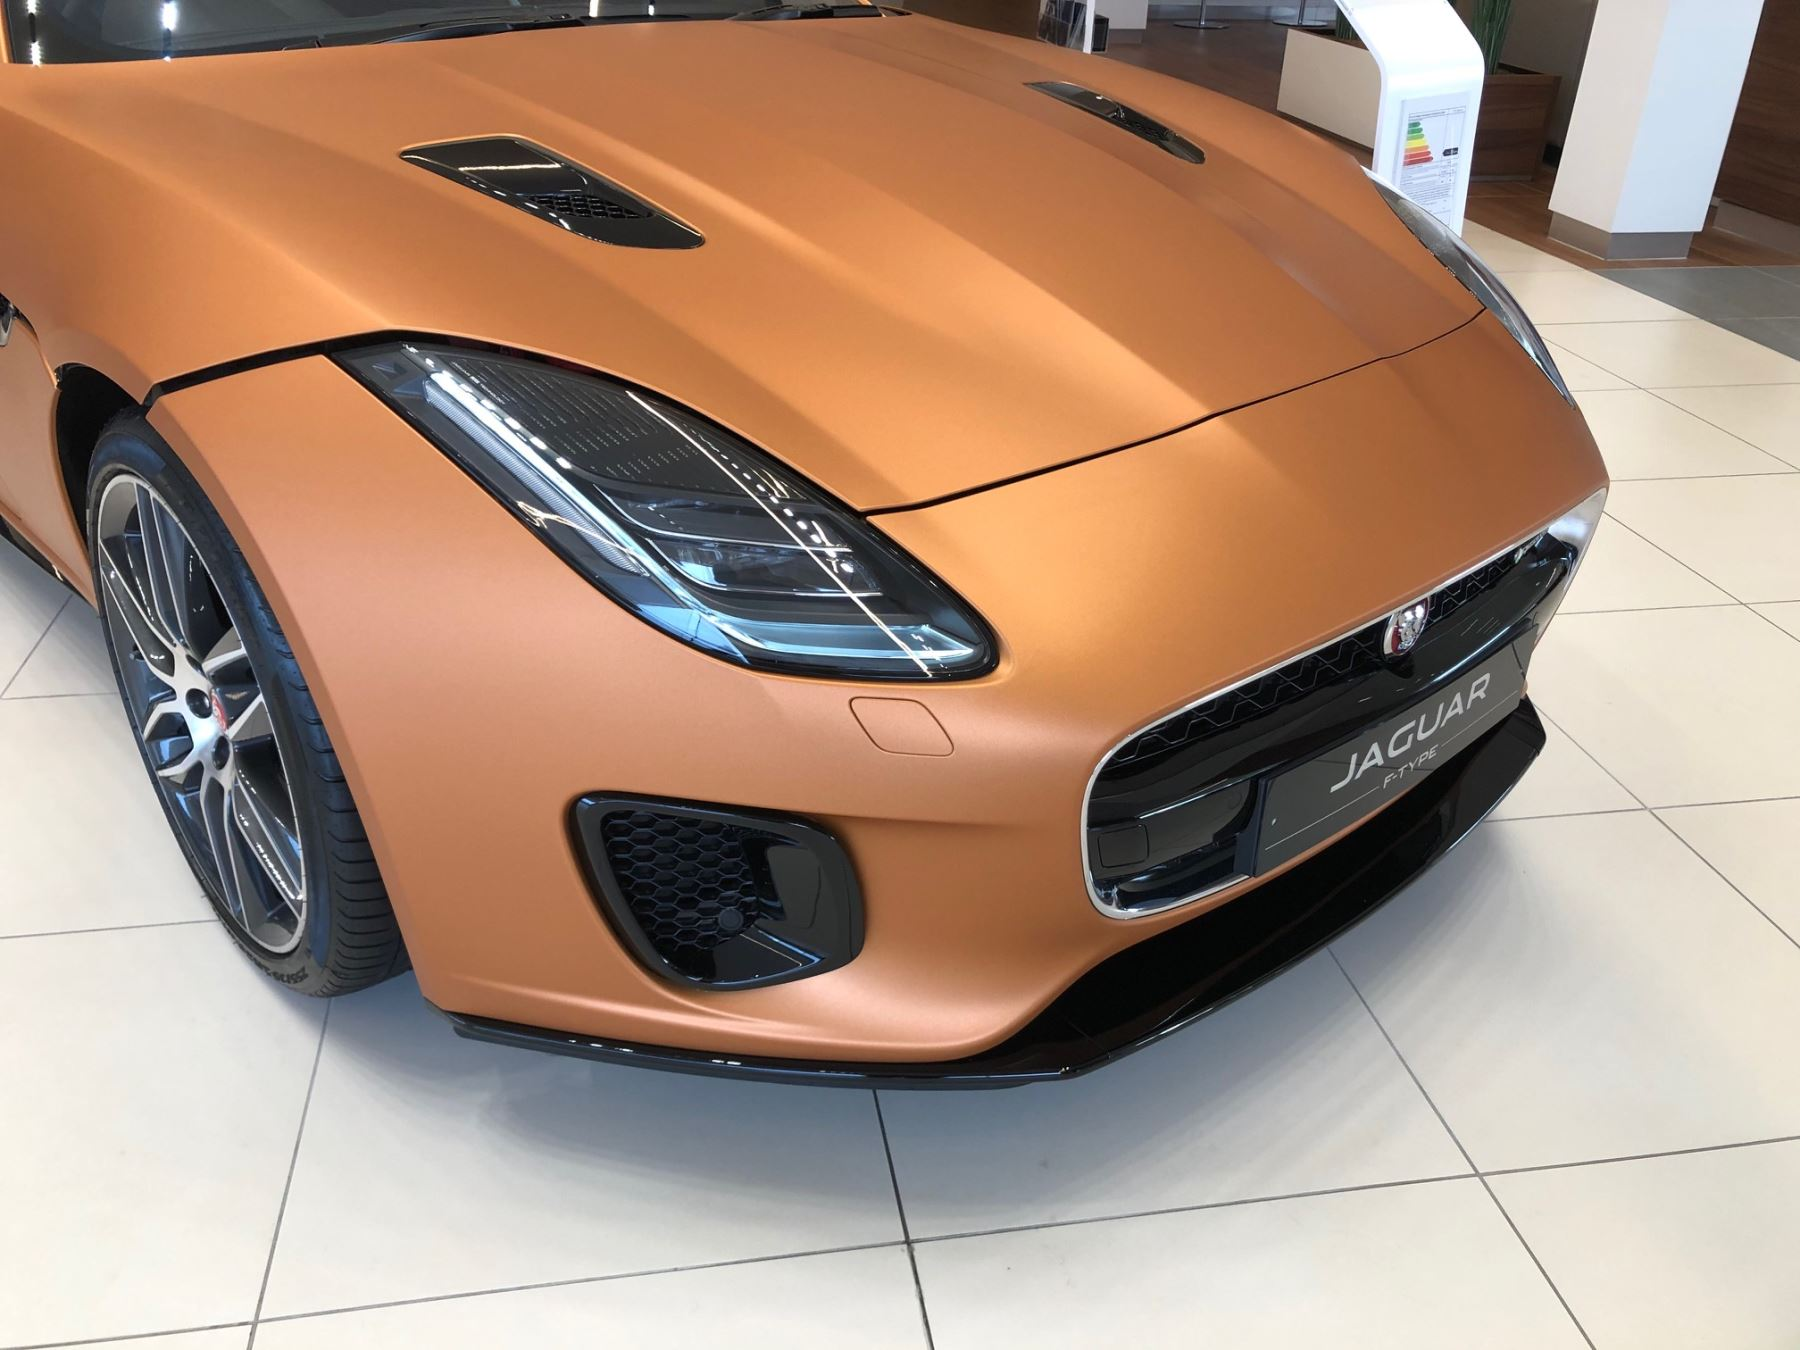 Jaguar F-TYPE Coupe 3.0 [380] Supercharged V6 R-Dynamic 2dr Auto AWD *MANAGERS SPECIAL* image 6